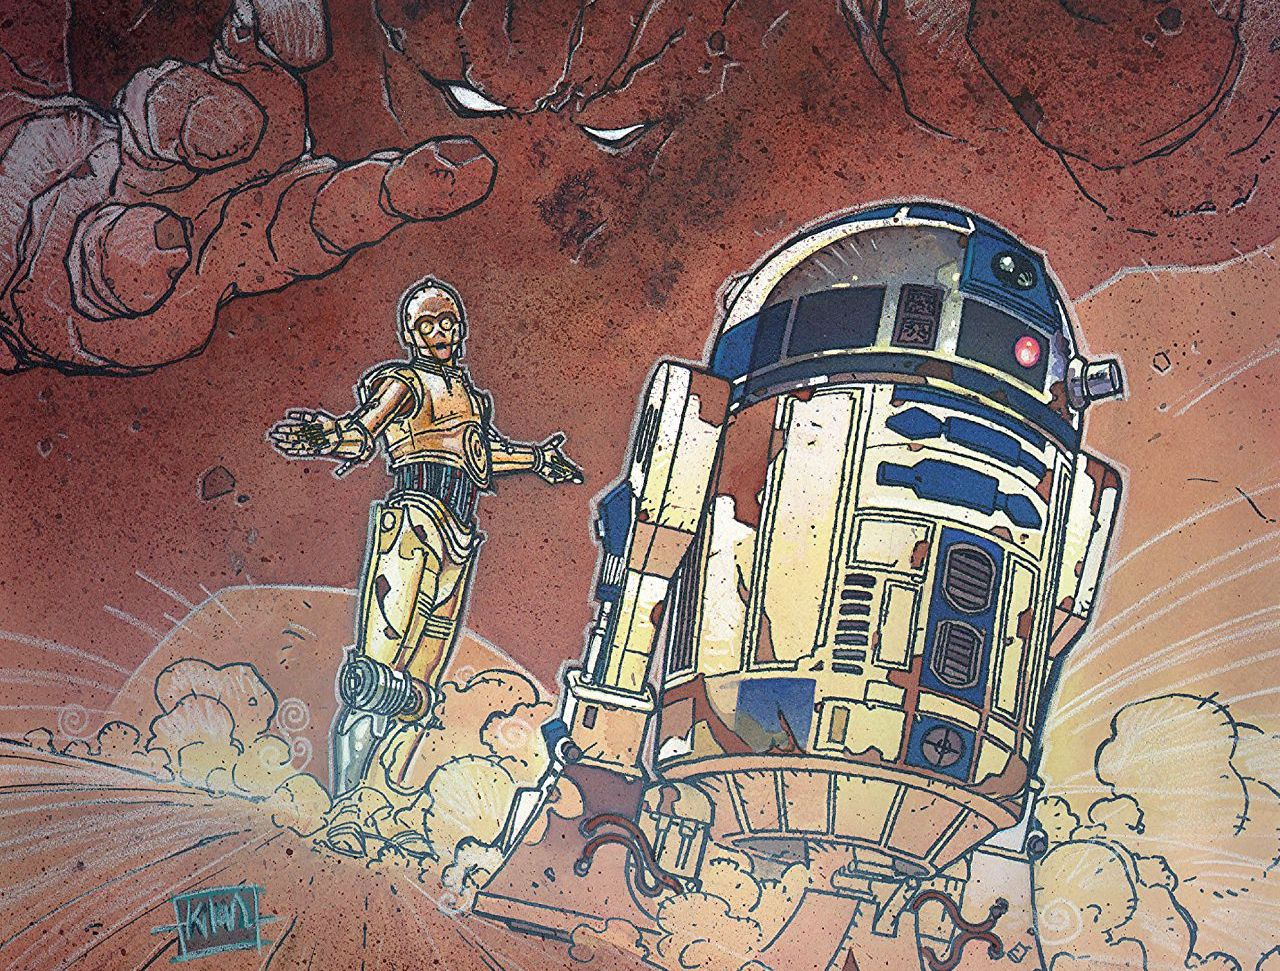 A must-read for Star Wars droid fans.